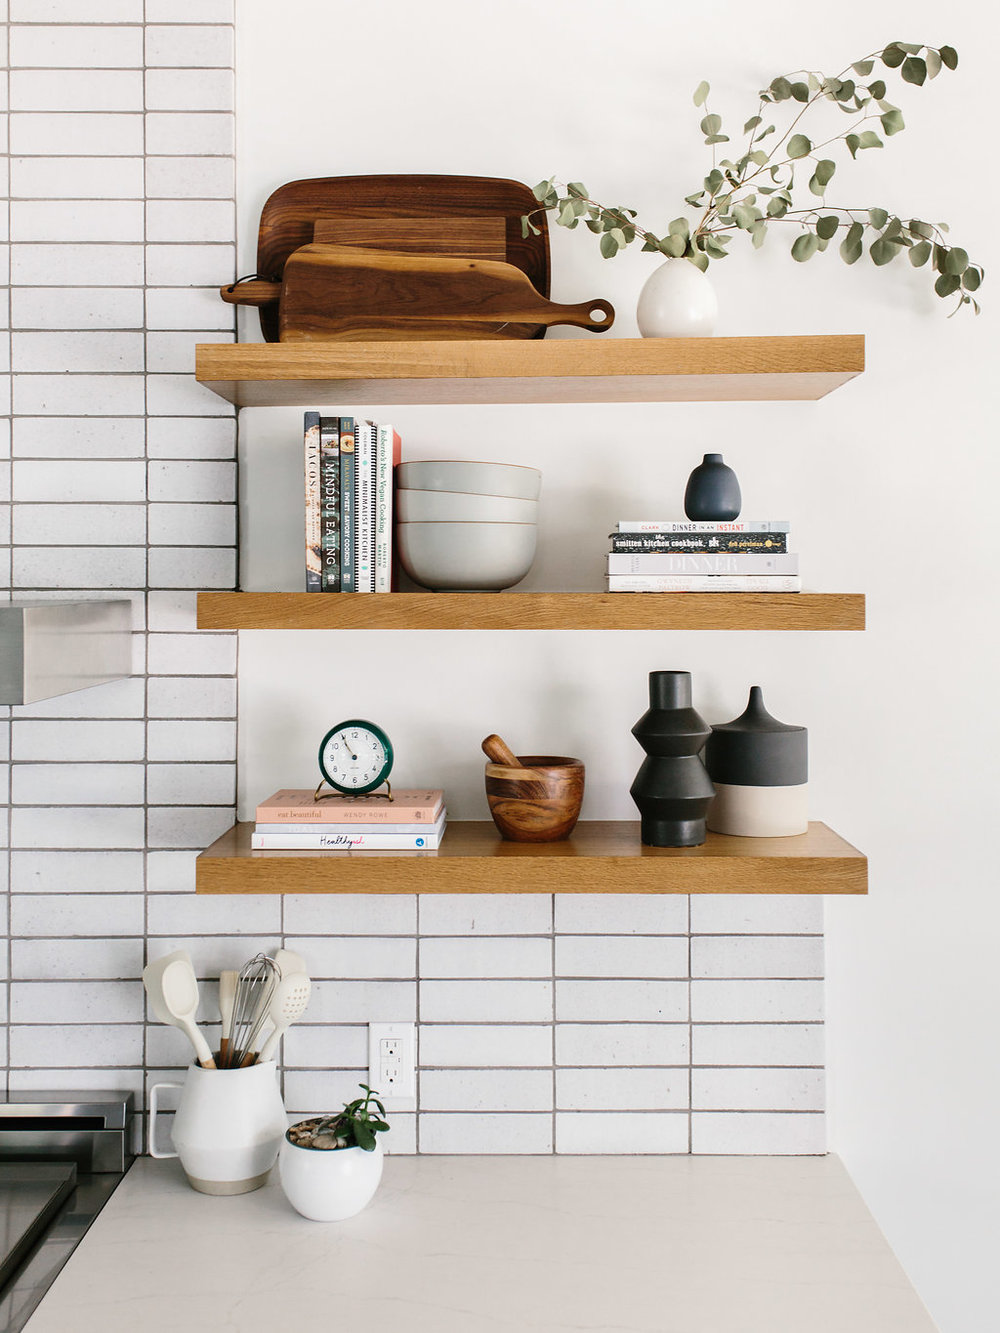 Kitchen-pasadea+shelves.jpg